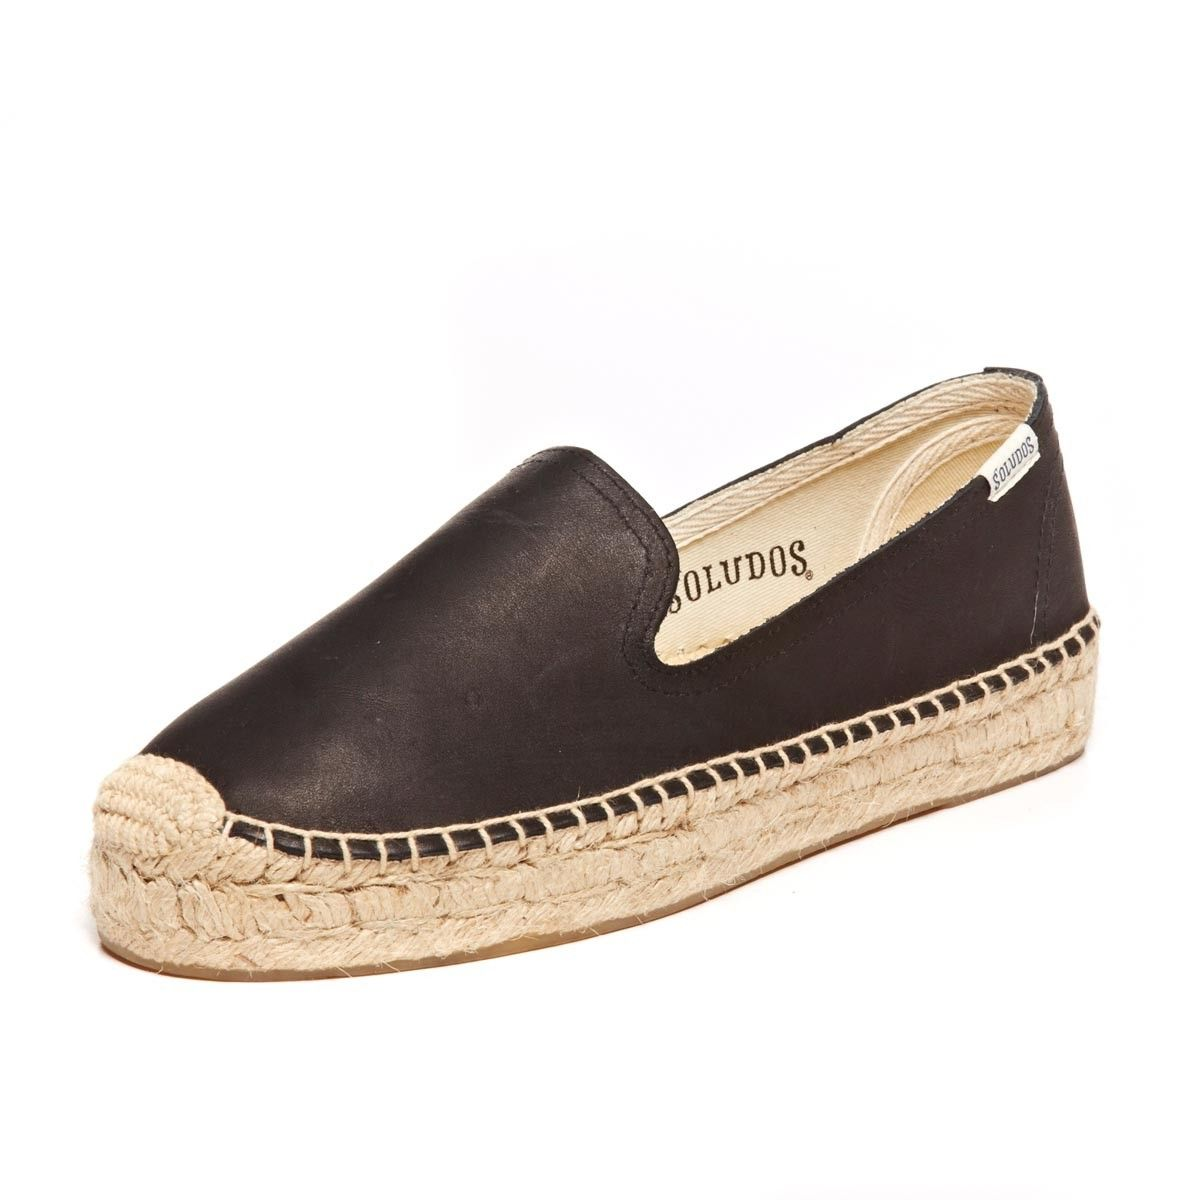 Platform Smoking Slipper - Leather Tan Espadrilles for Women from Soludos -  Soludos Espadrilles